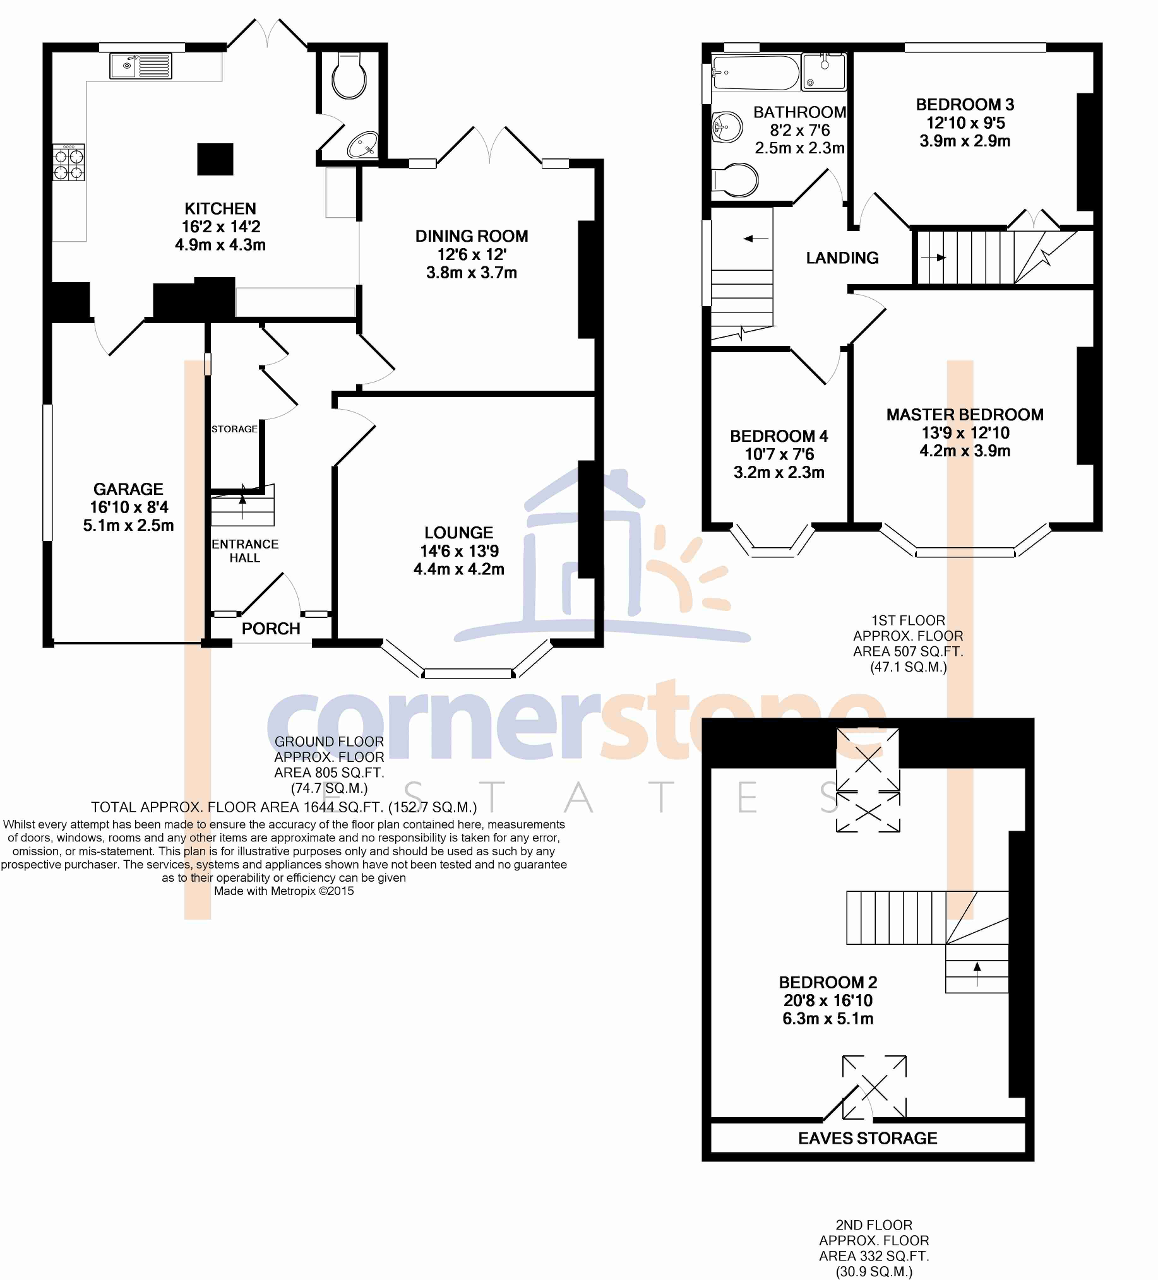 New house floor plans house plan 2017 for Kitchen ideas 5m x 3m